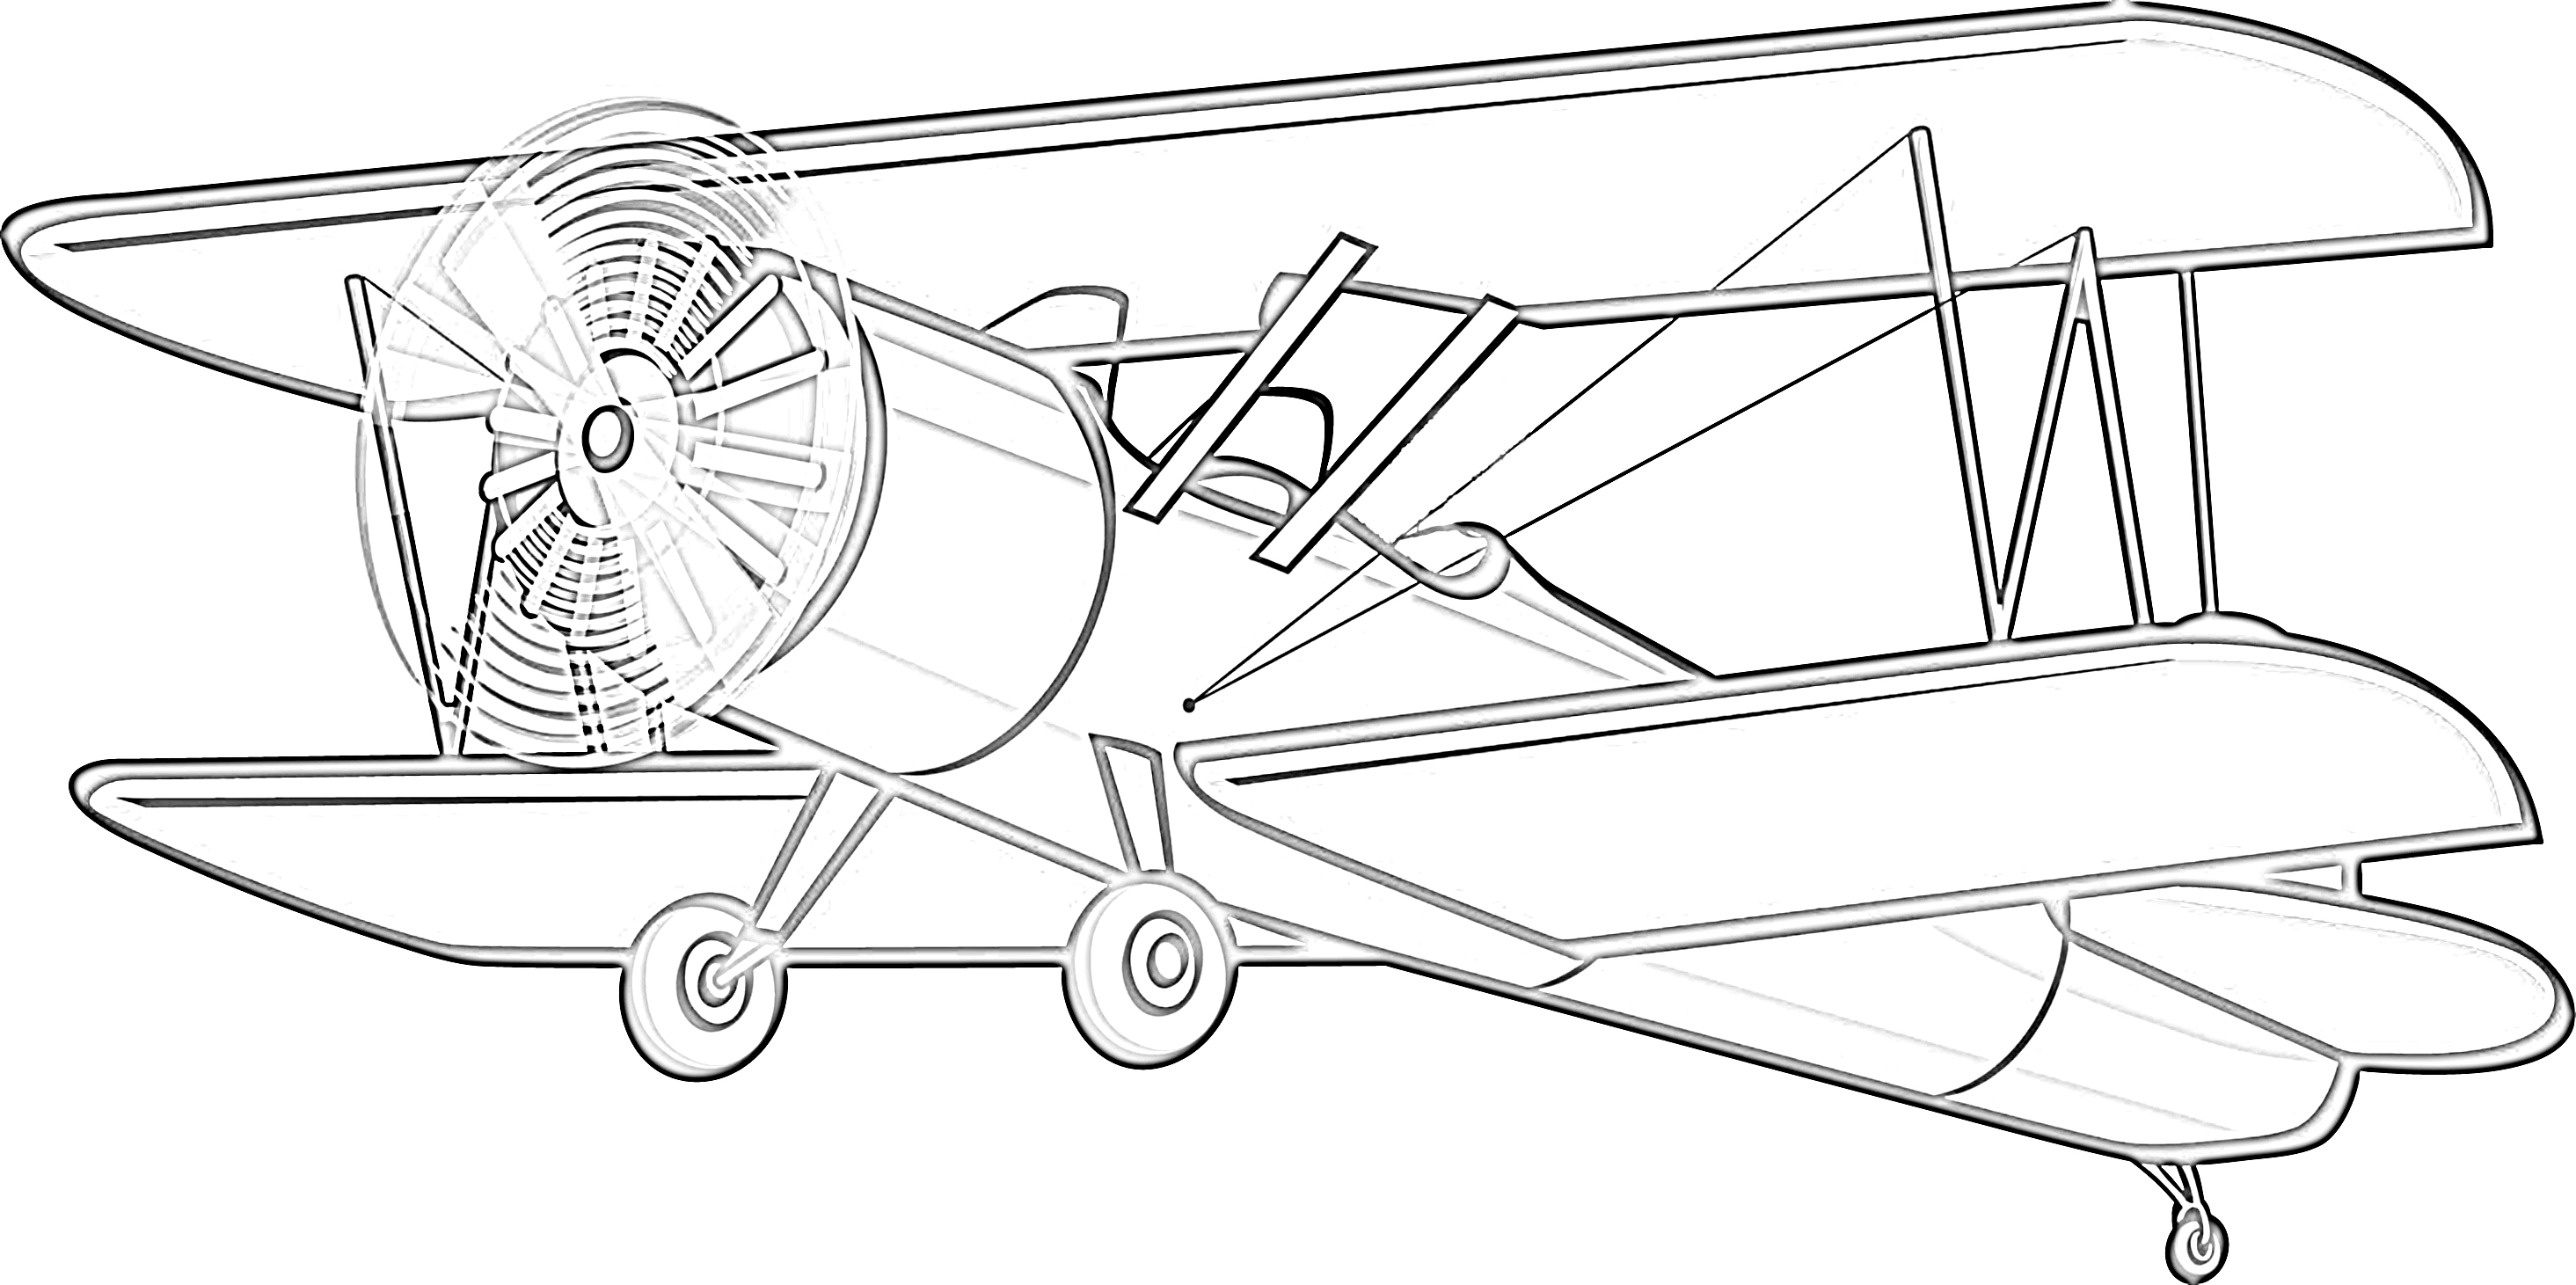 Classic airplane coloring page